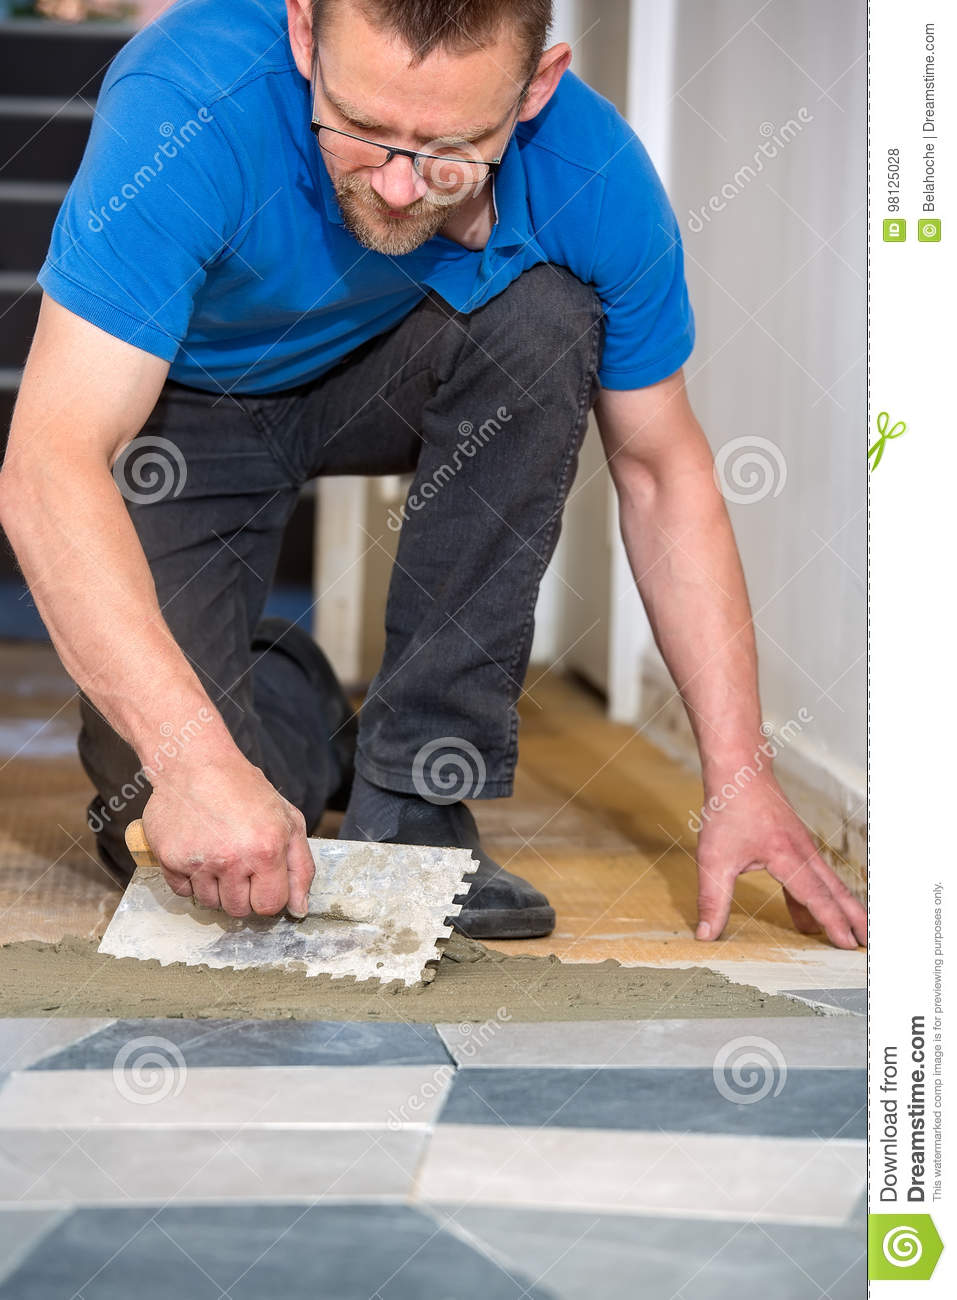 Floor tile trowel choice image tile flooring design ideas man laying floor tiles with tiling trowel stock photo image royalty free stock photo download man dailygadgetfo Gallery